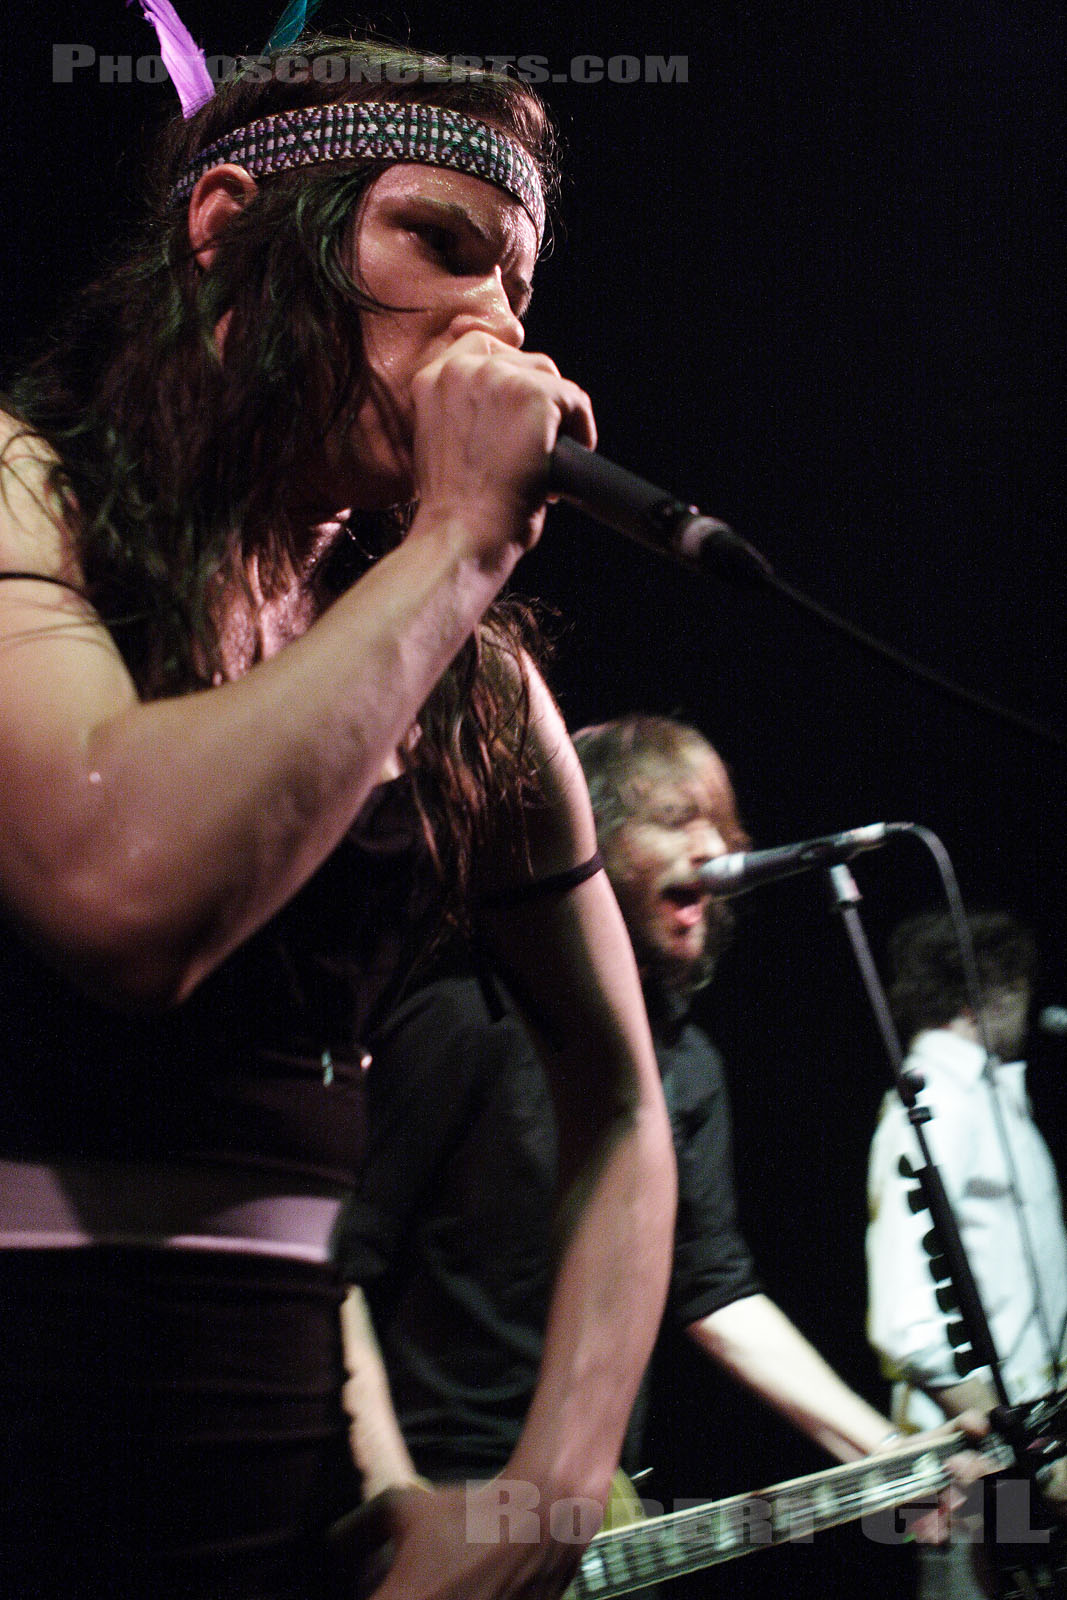 JULIETTE AND THE LICKS - 2006-10-20 - PARIS - Trabendo